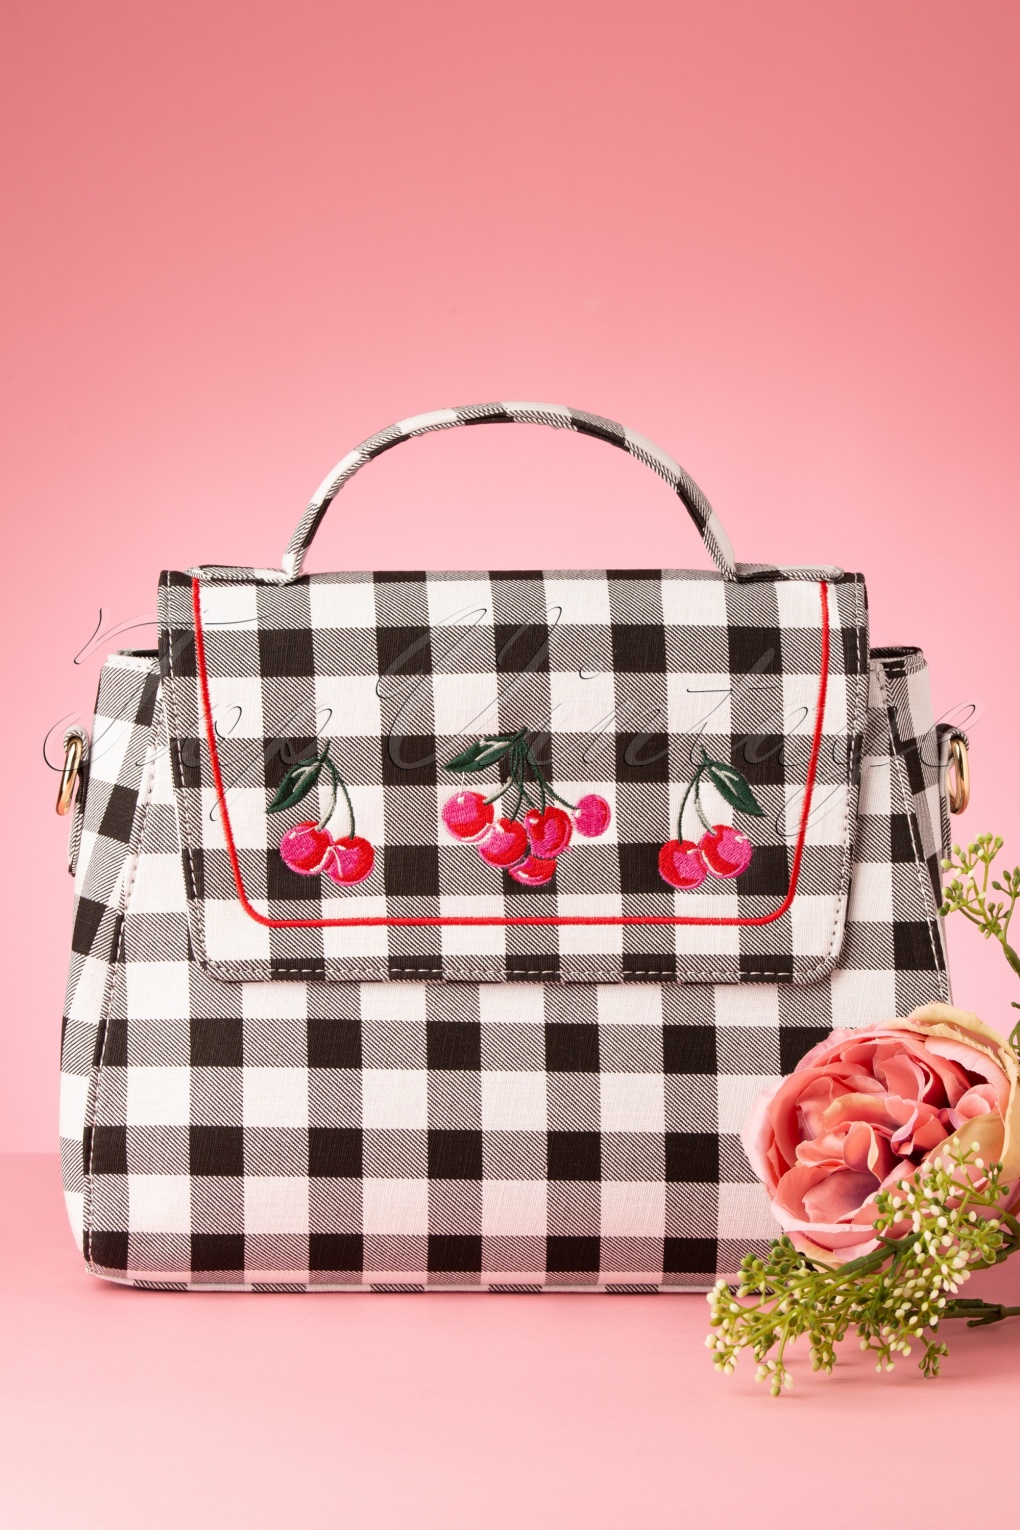 Vintage & Retro Handbags, Purses, Wallets, Bags 50s Sandra Gingham Cherry Bag in Black and White �48.53 AT vintagedancer.com